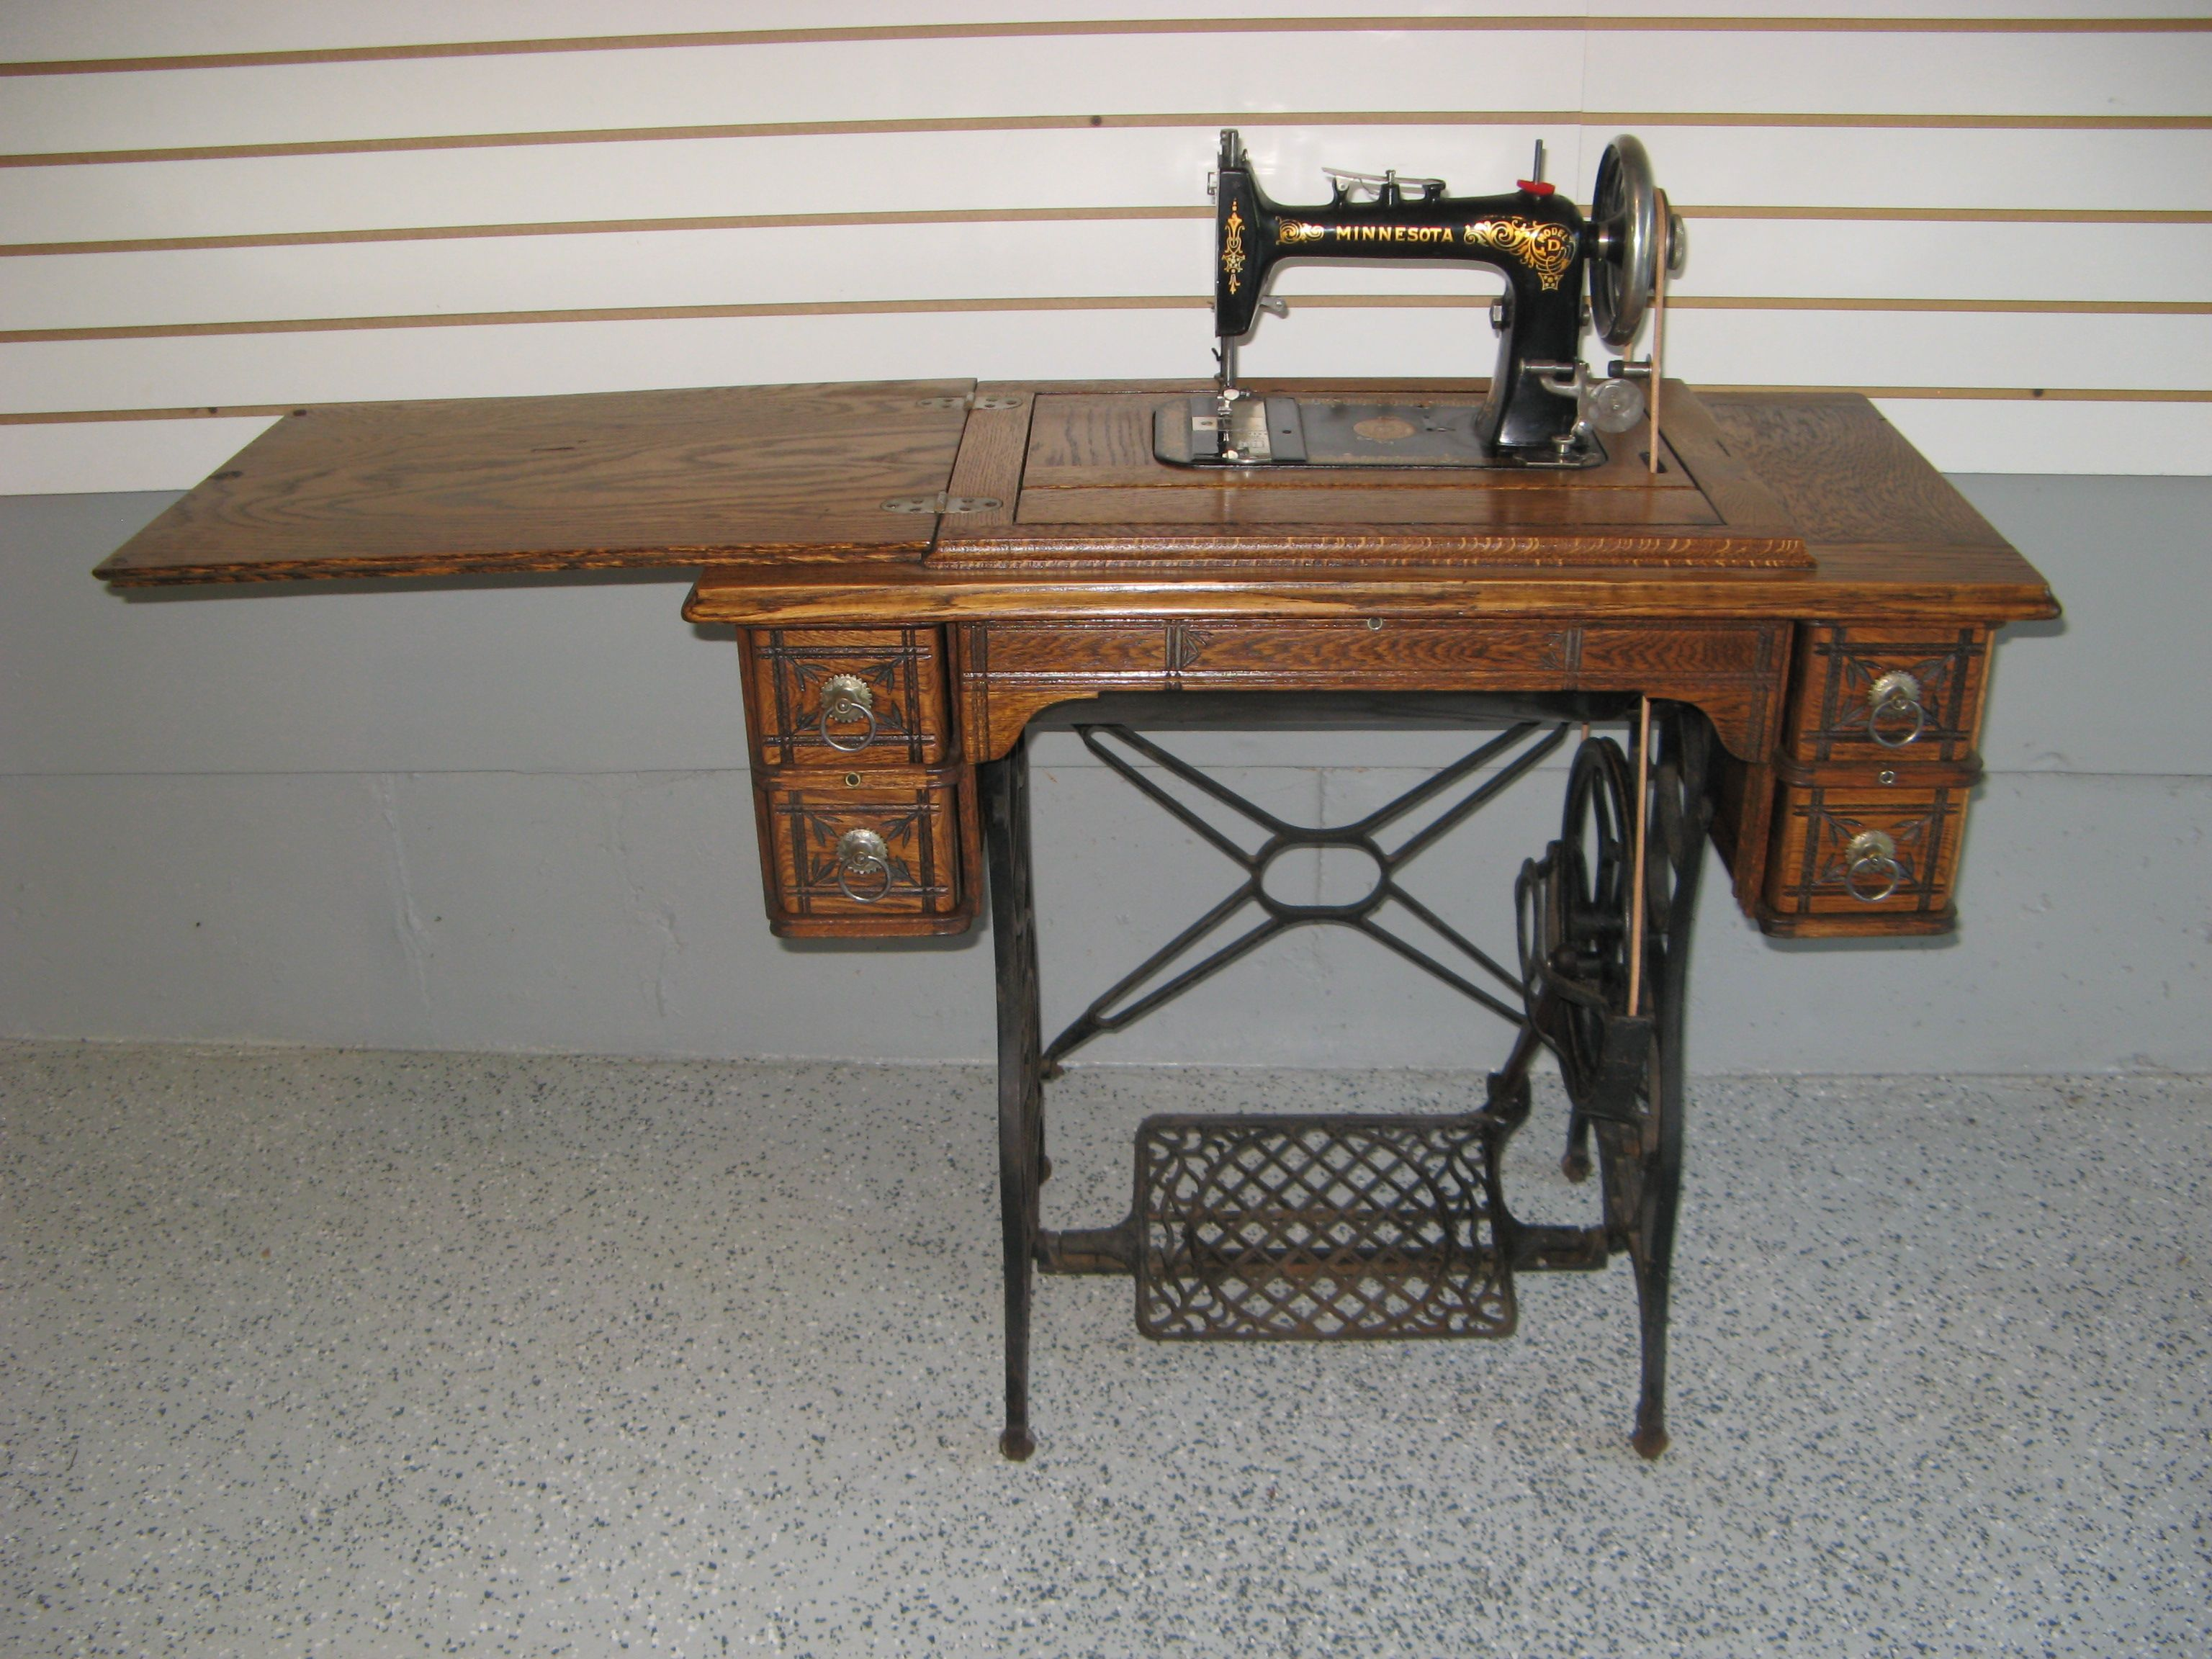 Early 1900s minnesota d treadle sewing machine and 5 drawer oak early 1900s minnesota d treadle sewing machine and 5 drawer oak cabinet after restoration sciox Choice Image